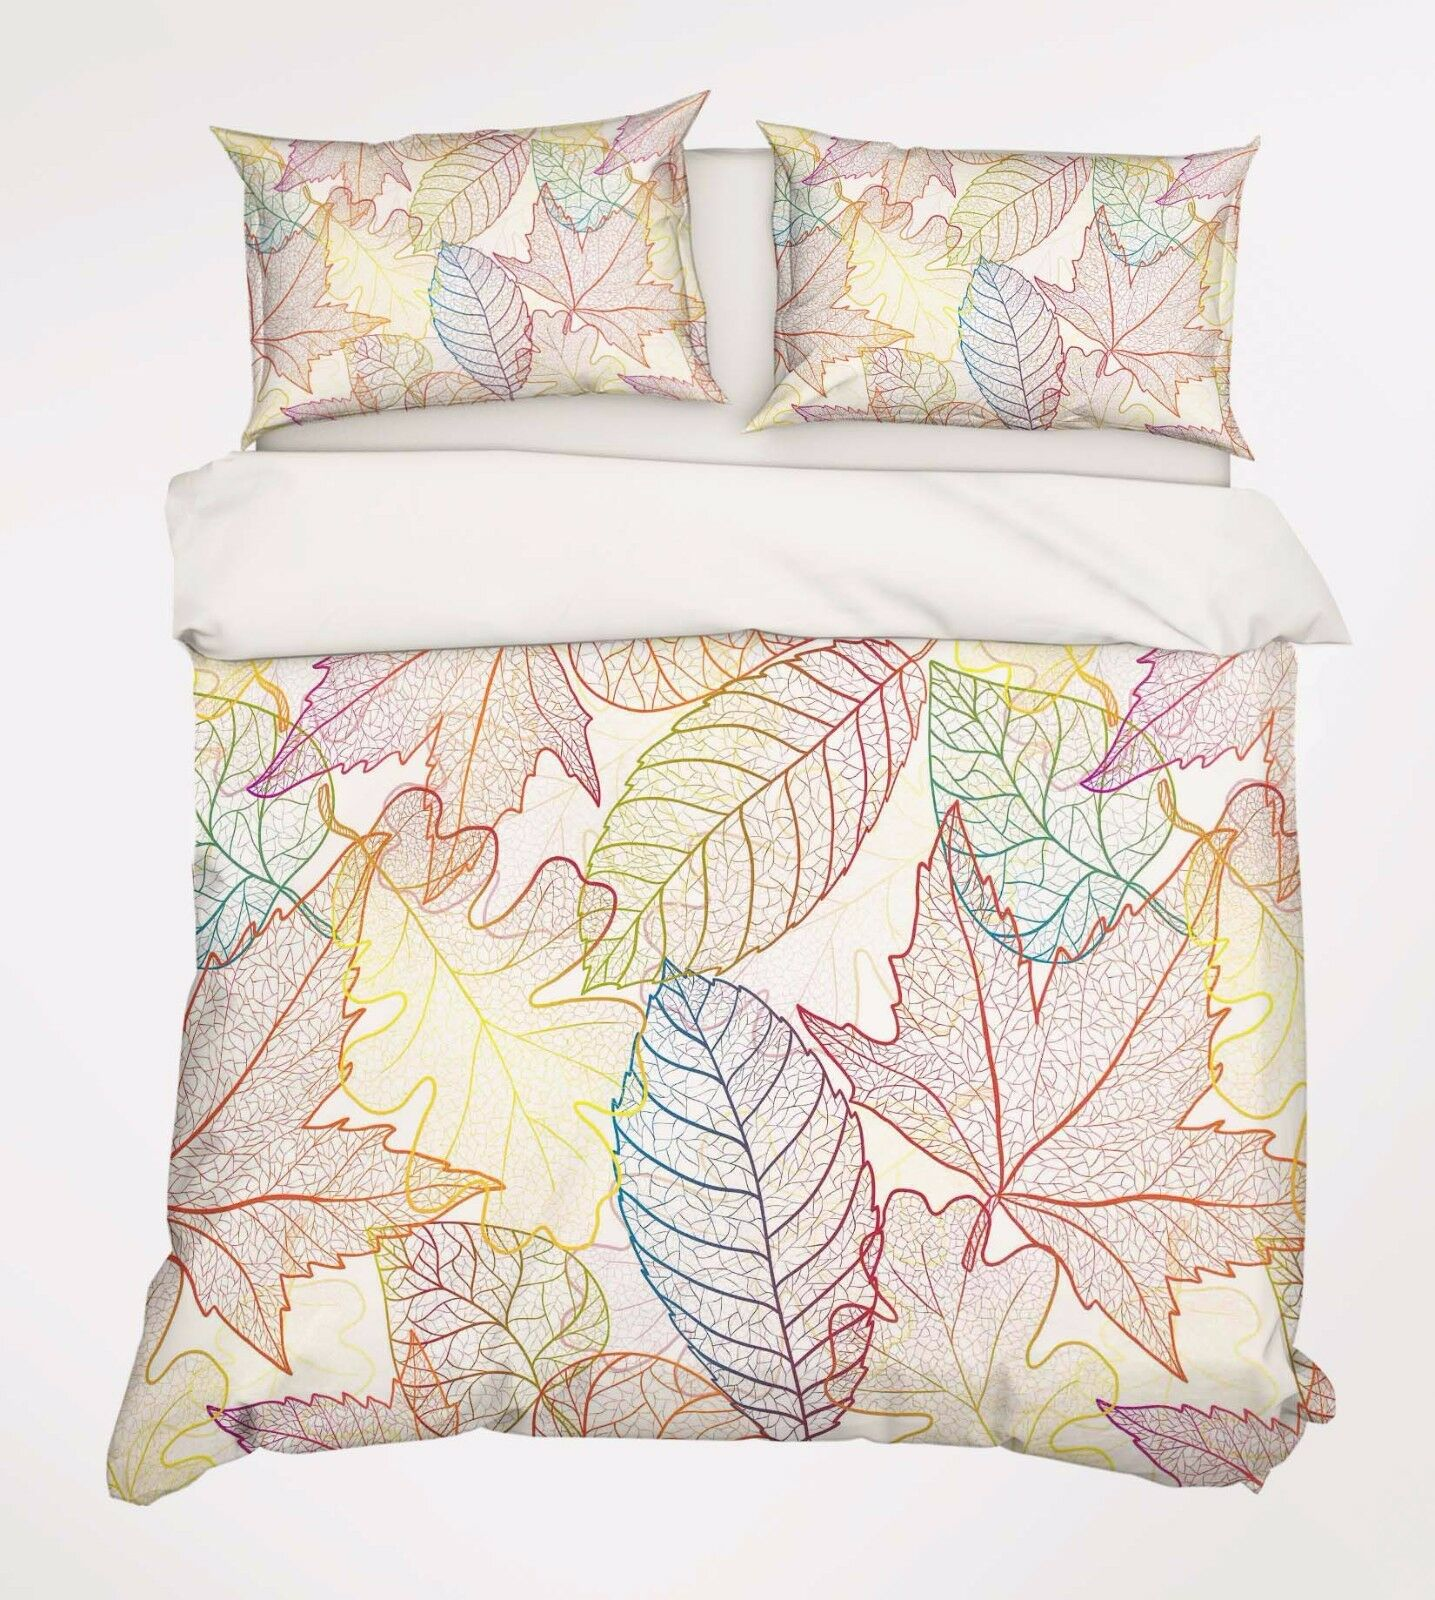 3D Leaf color 886 Bed Pillowcases Quilt Duvet Cover Set Single Queen UK Carly